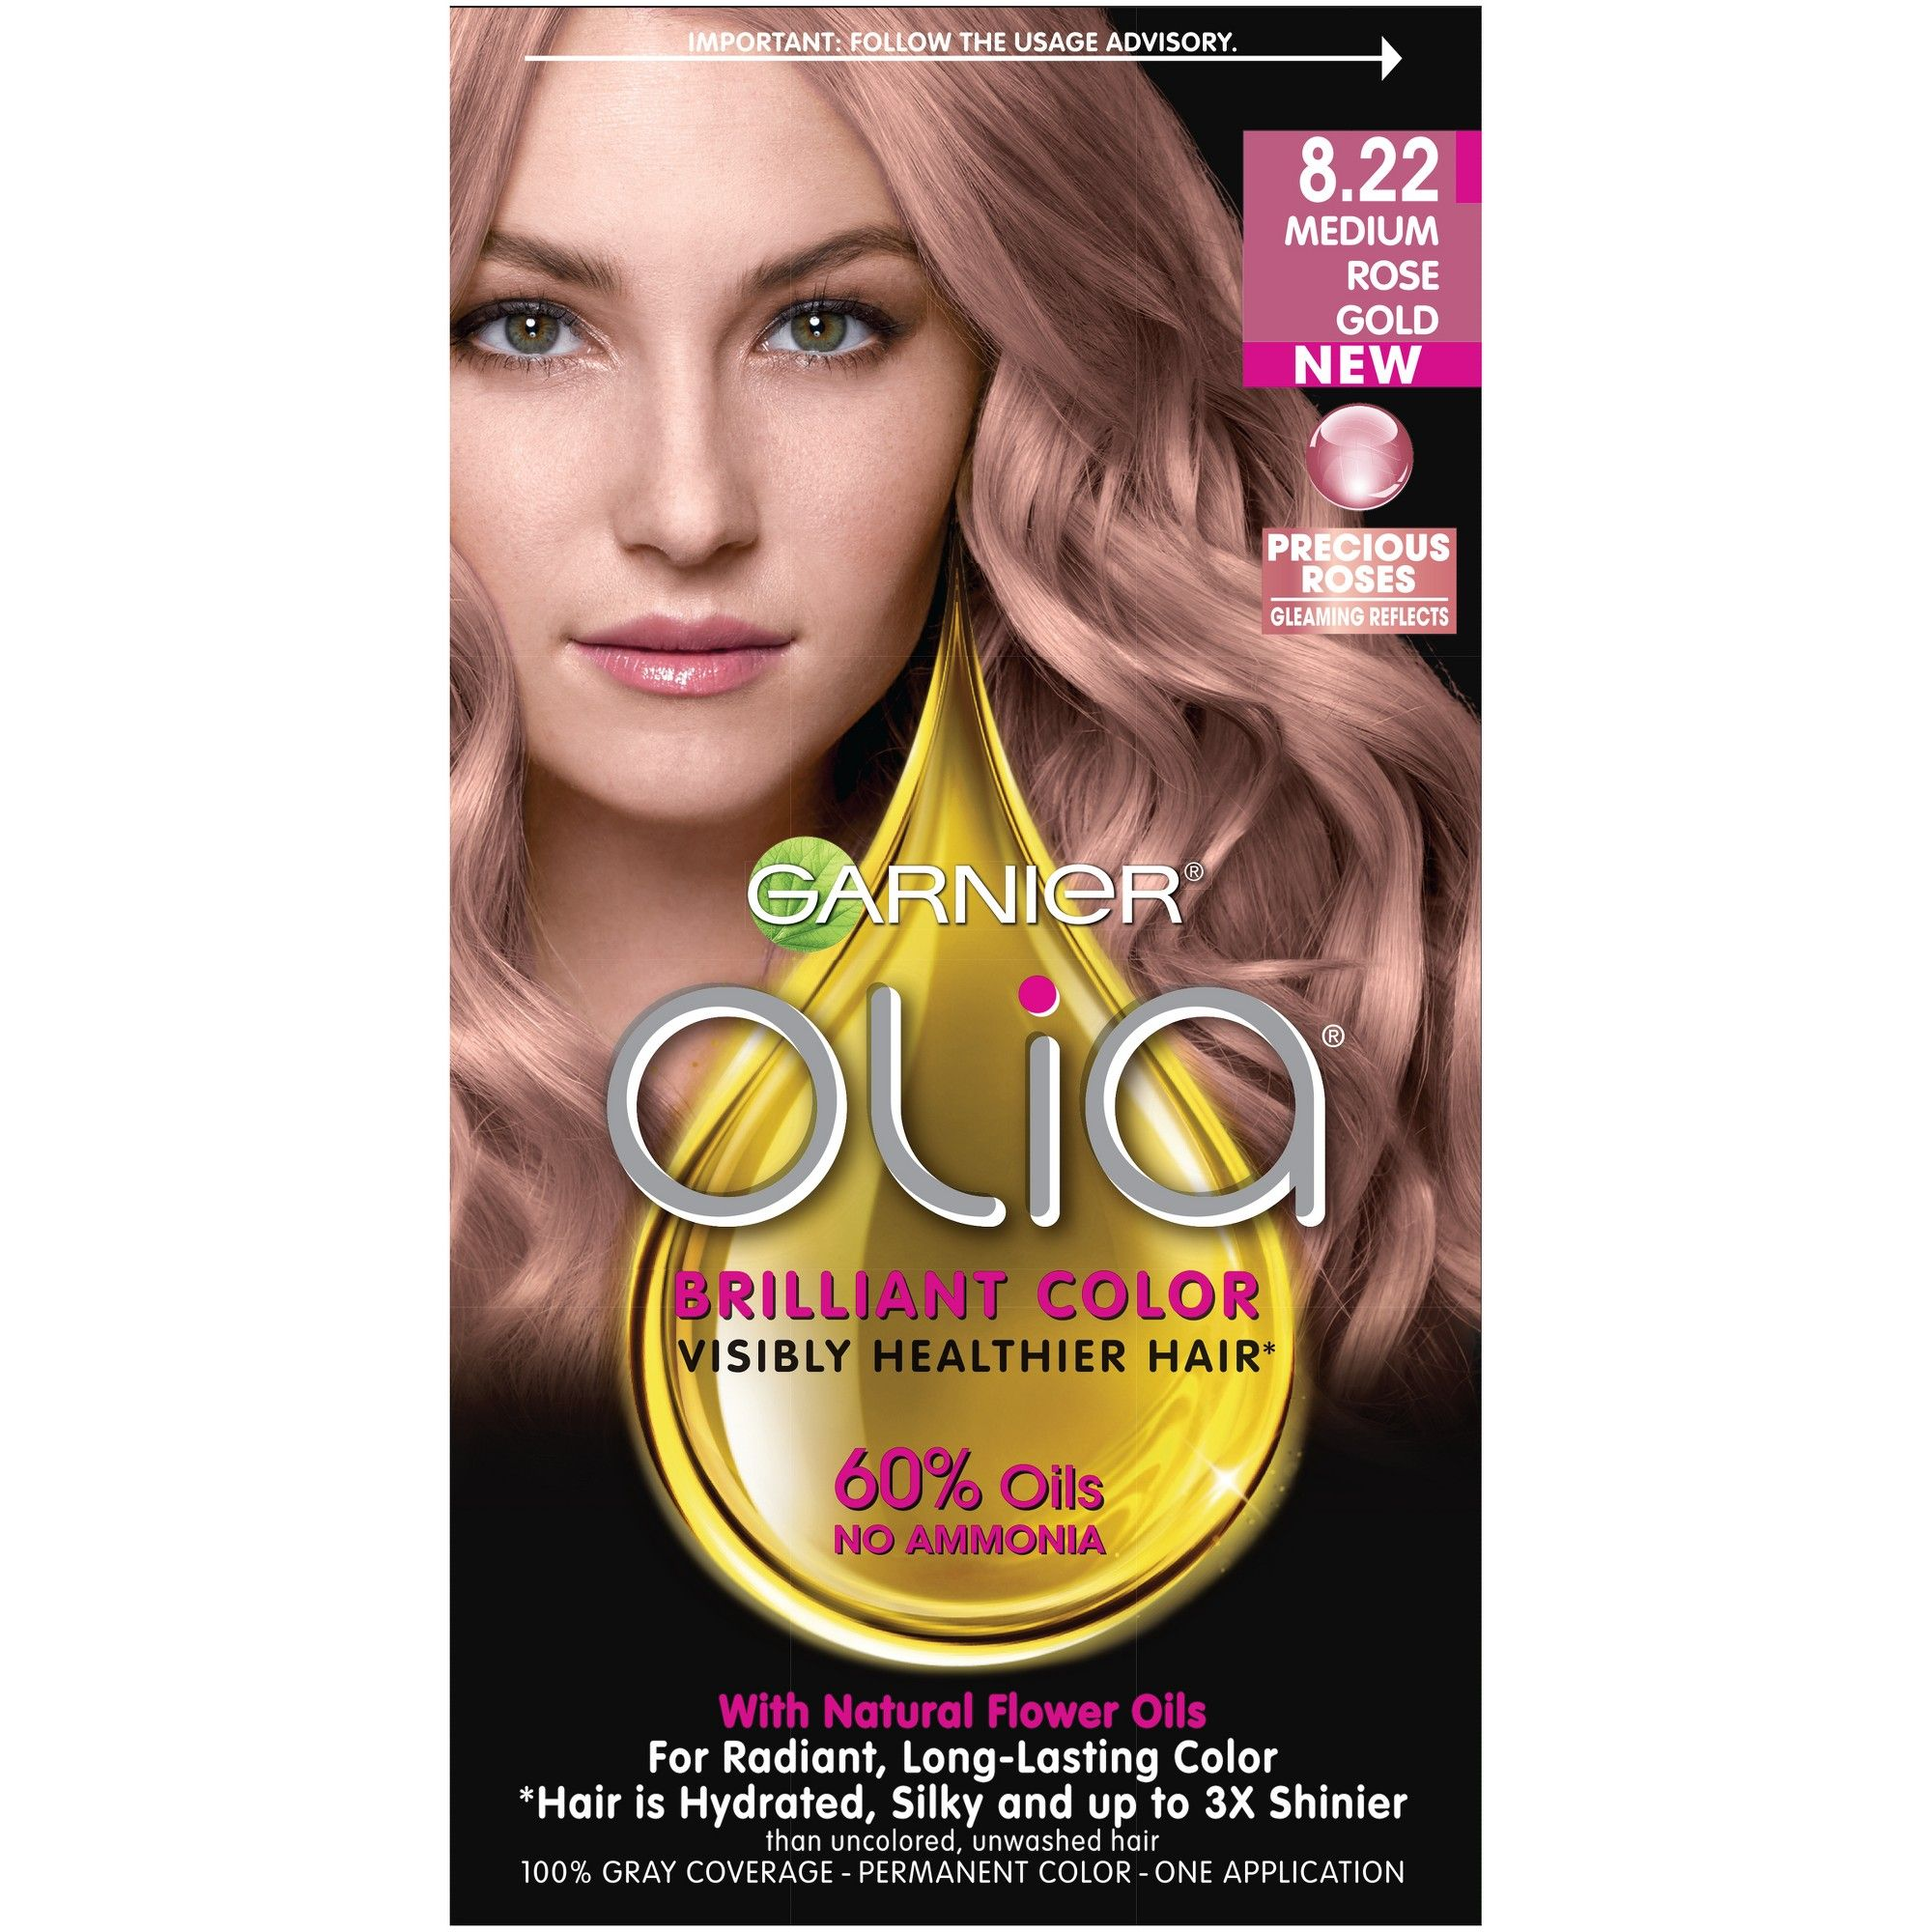 Garnier Olia Rose Gold Blonde 8 22 With Images Olia Hair Color